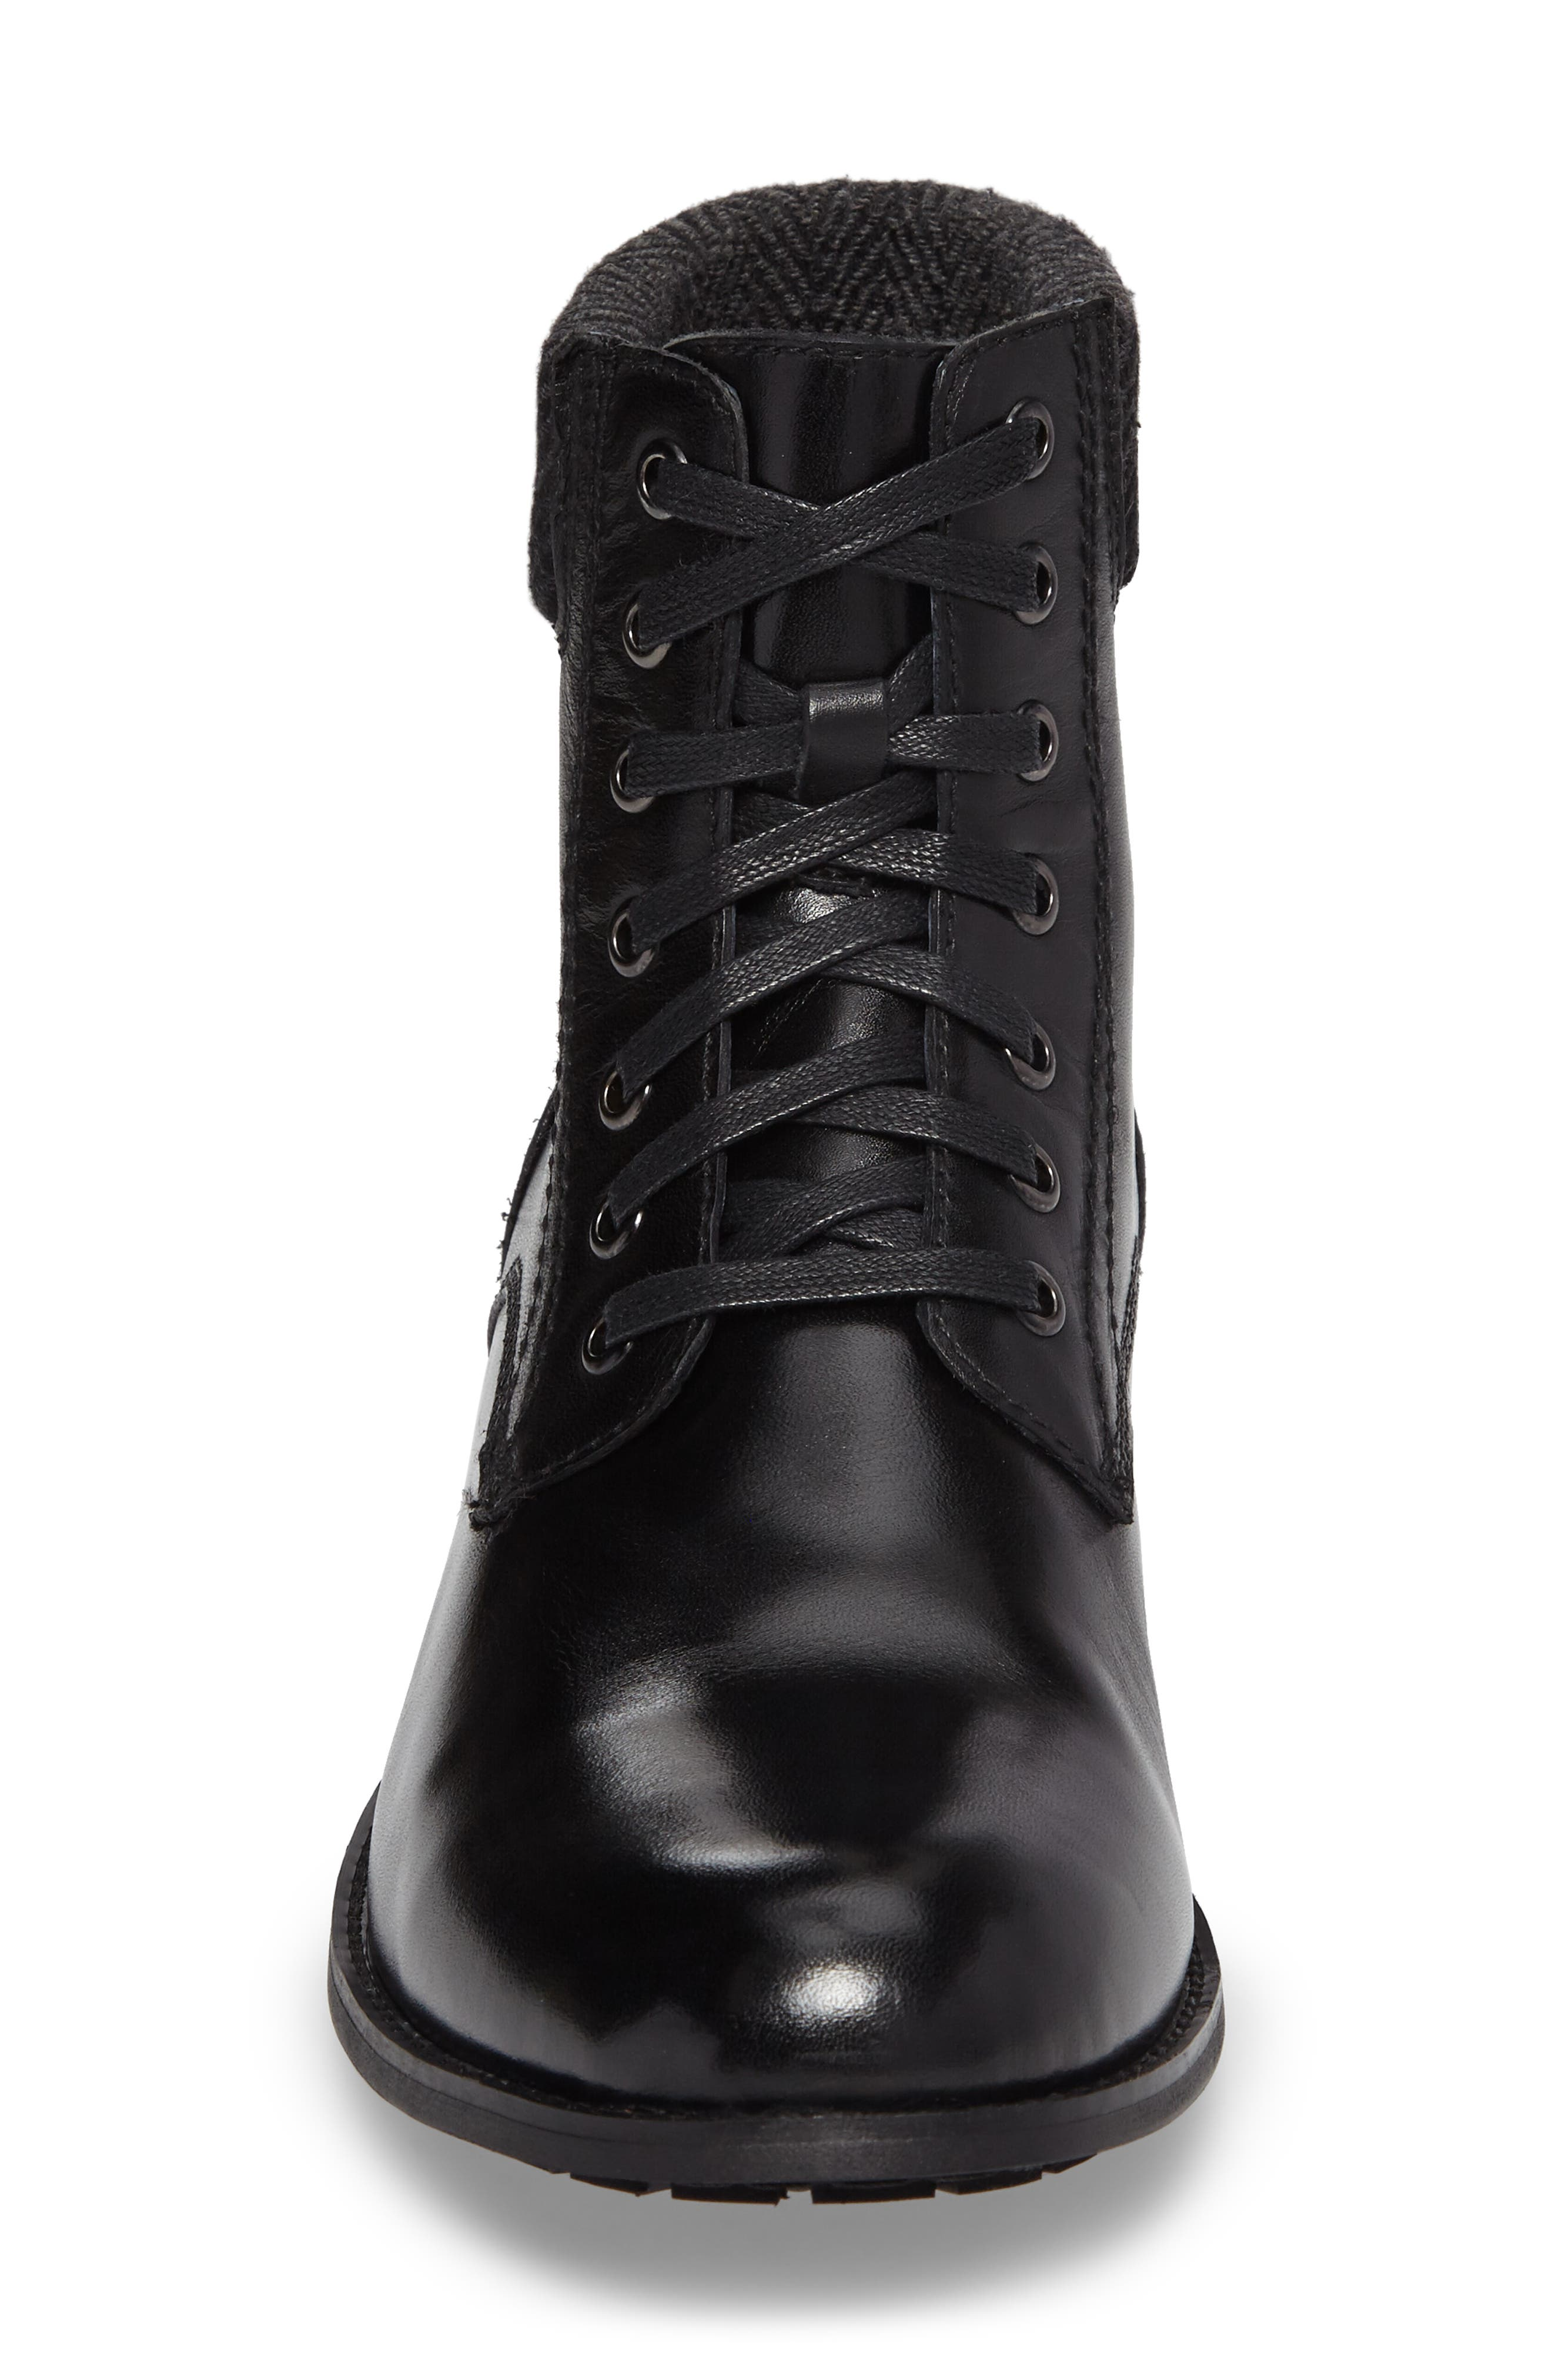 Saar Plain Toe Boot,                             Alternate thumbnail 4, color,                             001